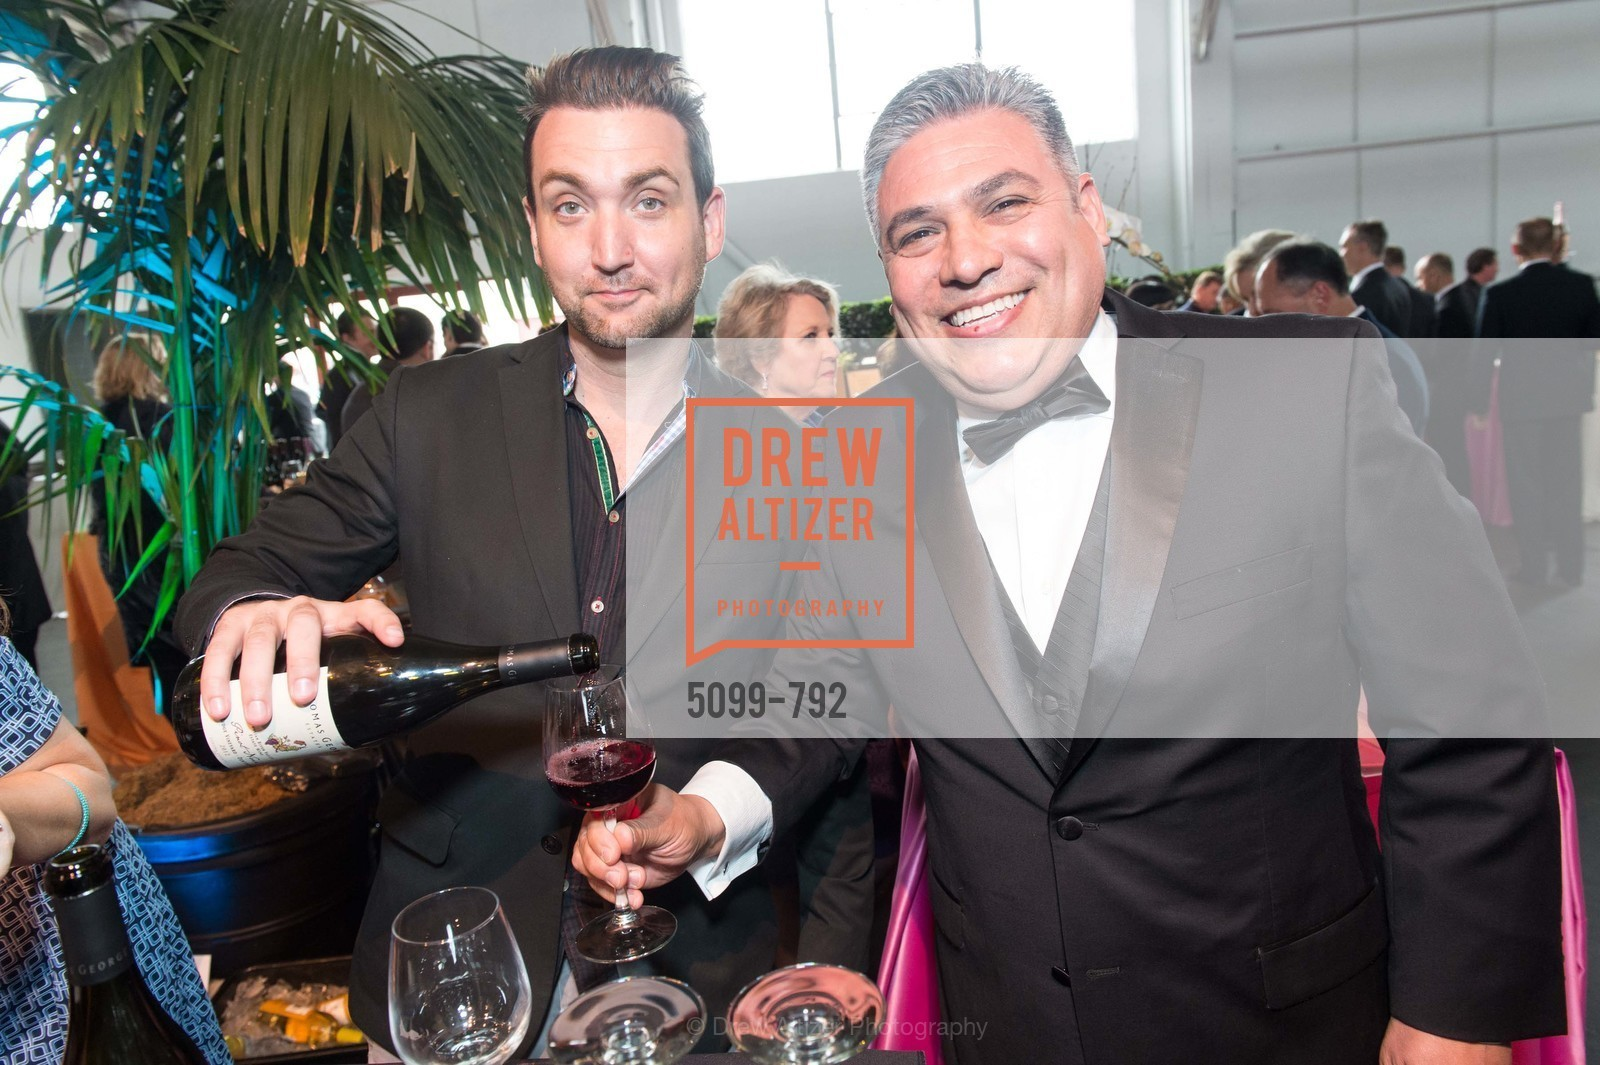 Sean Tevik, John China, MEALS ON WHEELS OF SAN FRANCISCO'S 28th Annual Star Chefs and Vintners Gala, US, April 20th, 2015,Drew Altizer, Drew Altizer Photography, full-service event agency, private events, San Francisco photographer, photographer California